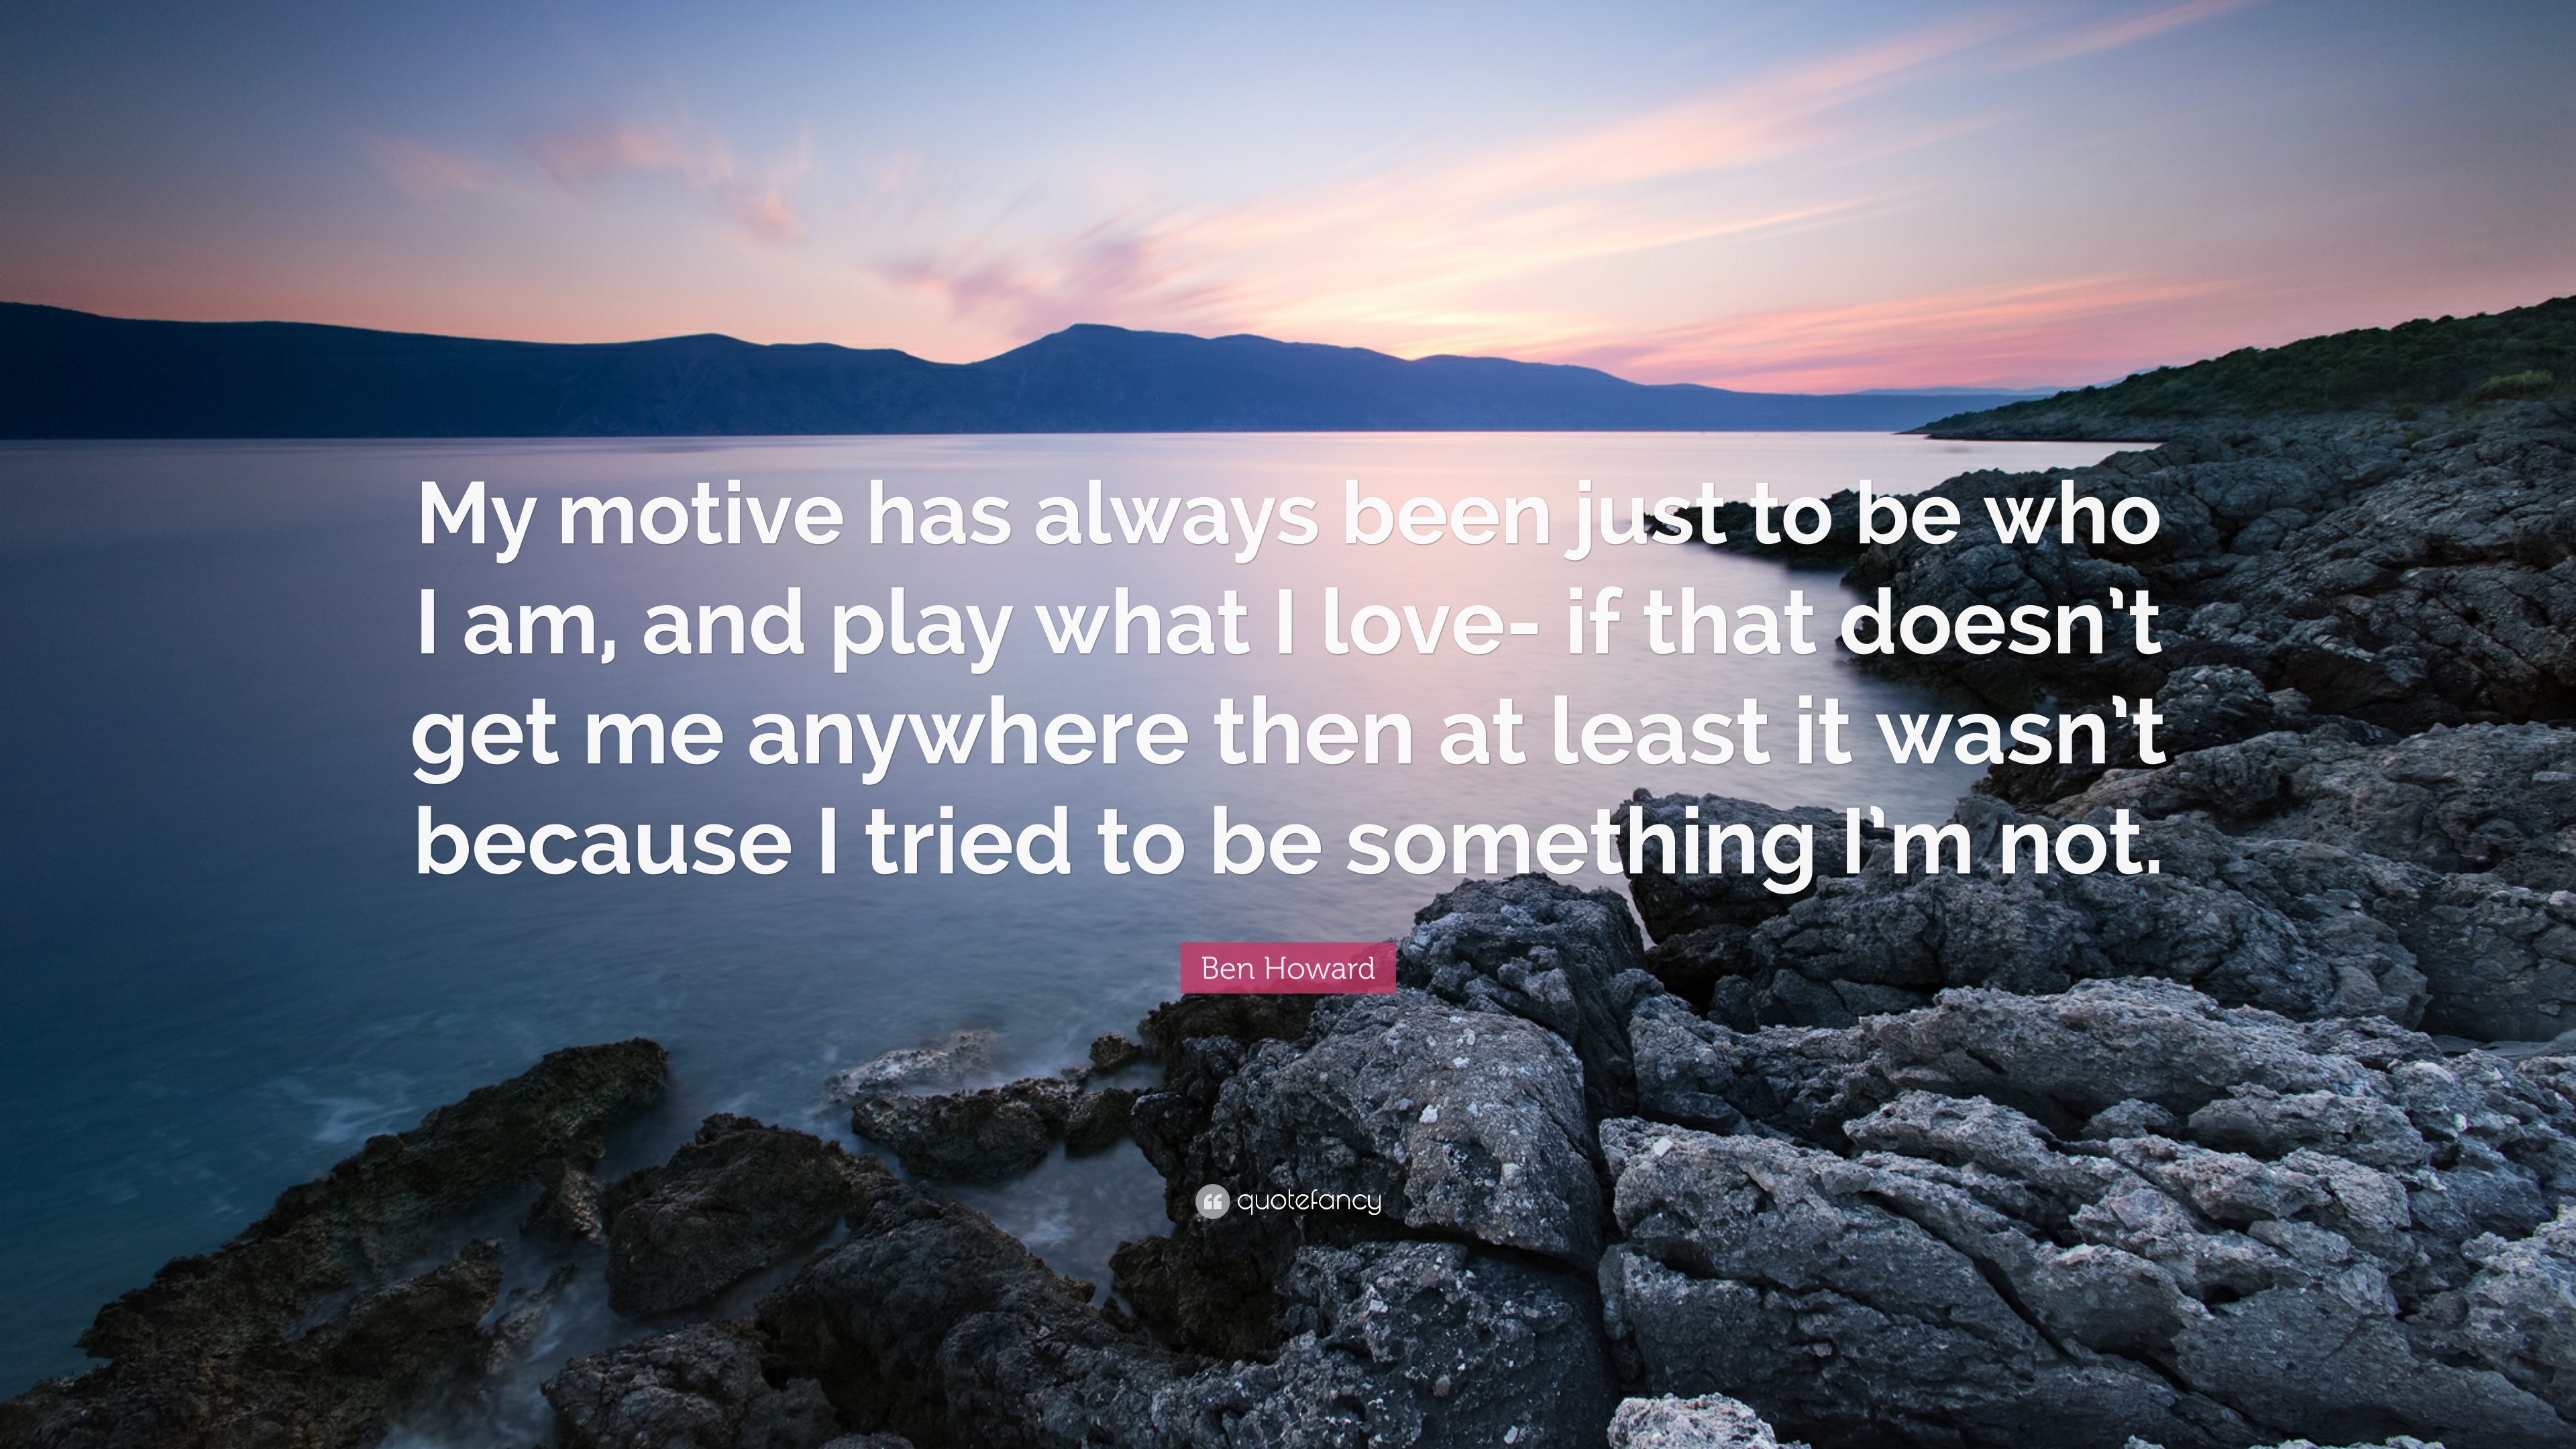 Ben Howard Quote: U201cMy Motive Has Always Been Just To Be Who I Am